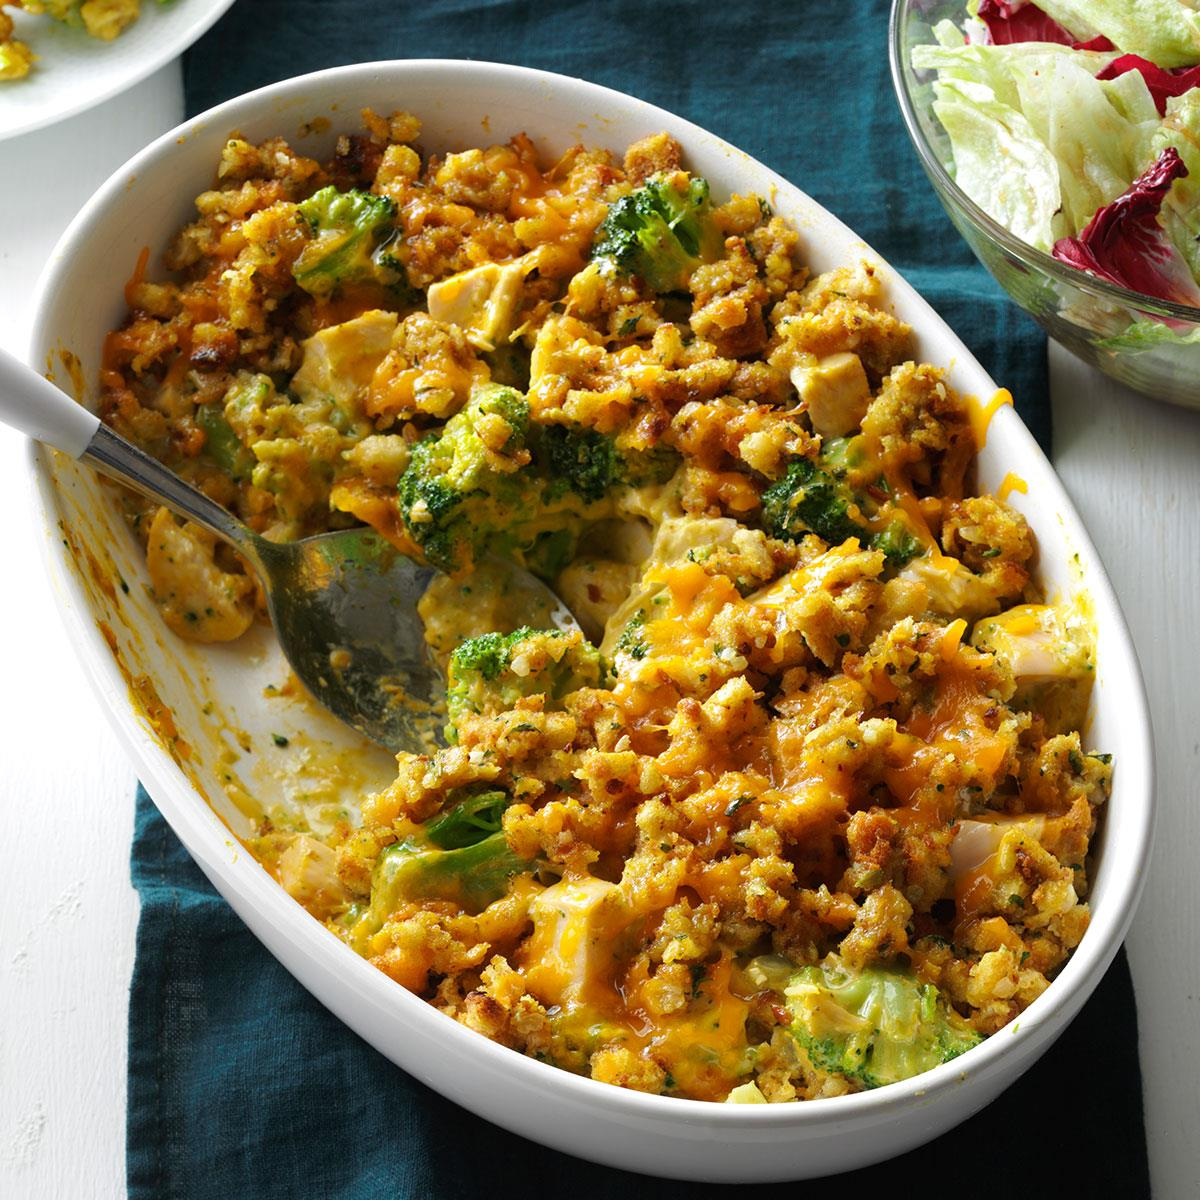 Easy recipe for chicken and broccoli bake